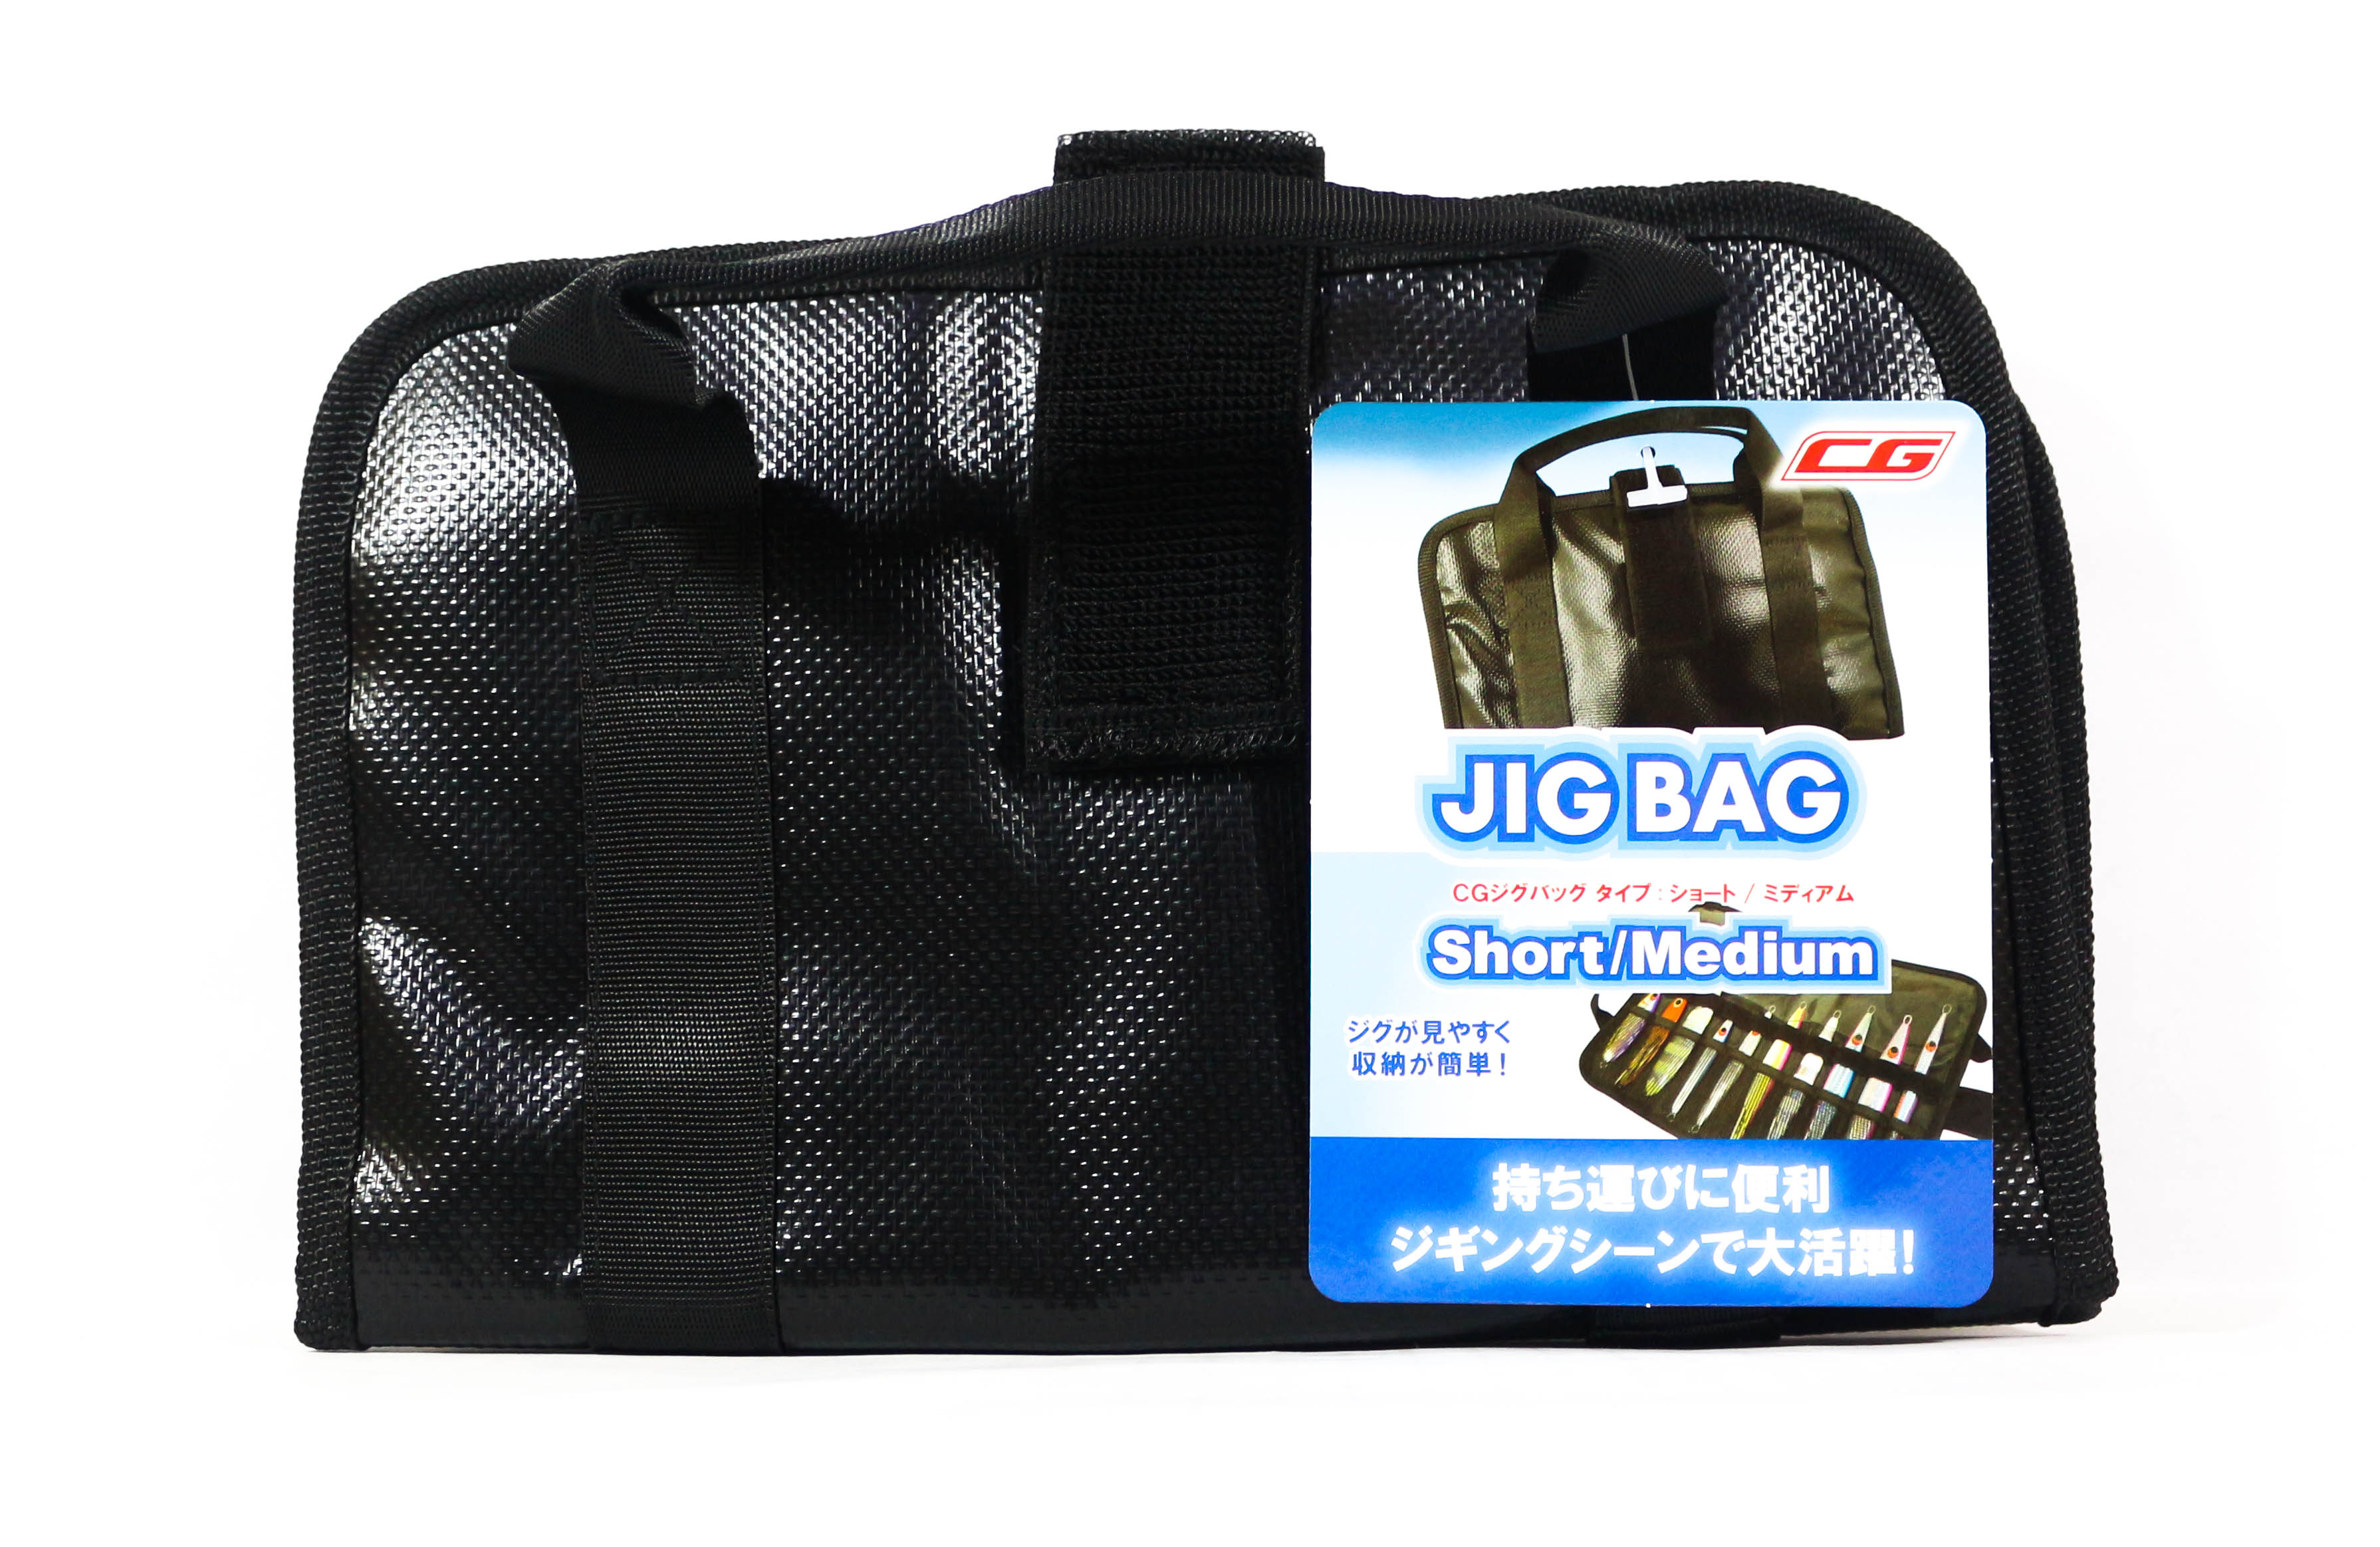 Golden Mean CG Jig Bag Short/Medium 240 x 320mm (4361)